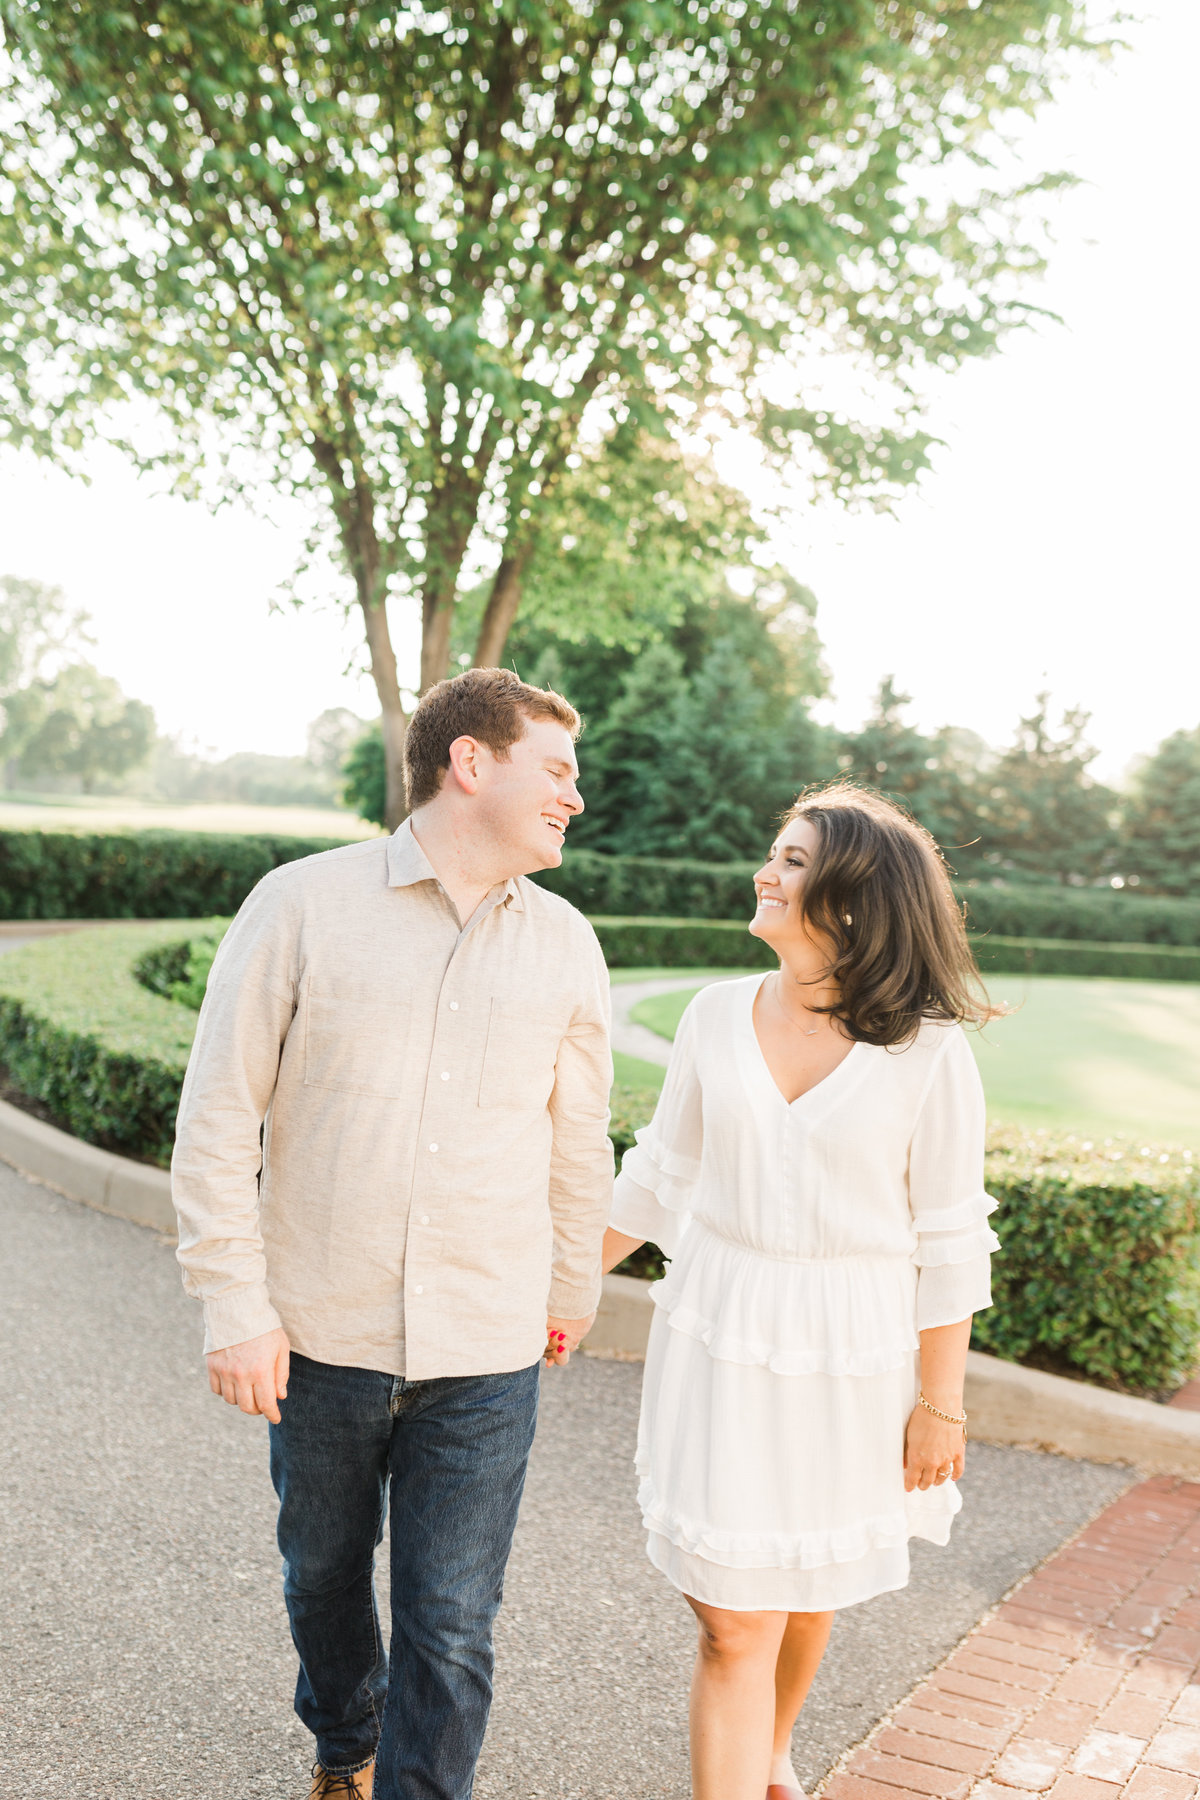 Trish Allison Photography Minneapolis St Paul Twin Cities Photographer Wedding Engagement Newborn Motherhood Lifestyle Luxury Fine Art Light Airy51